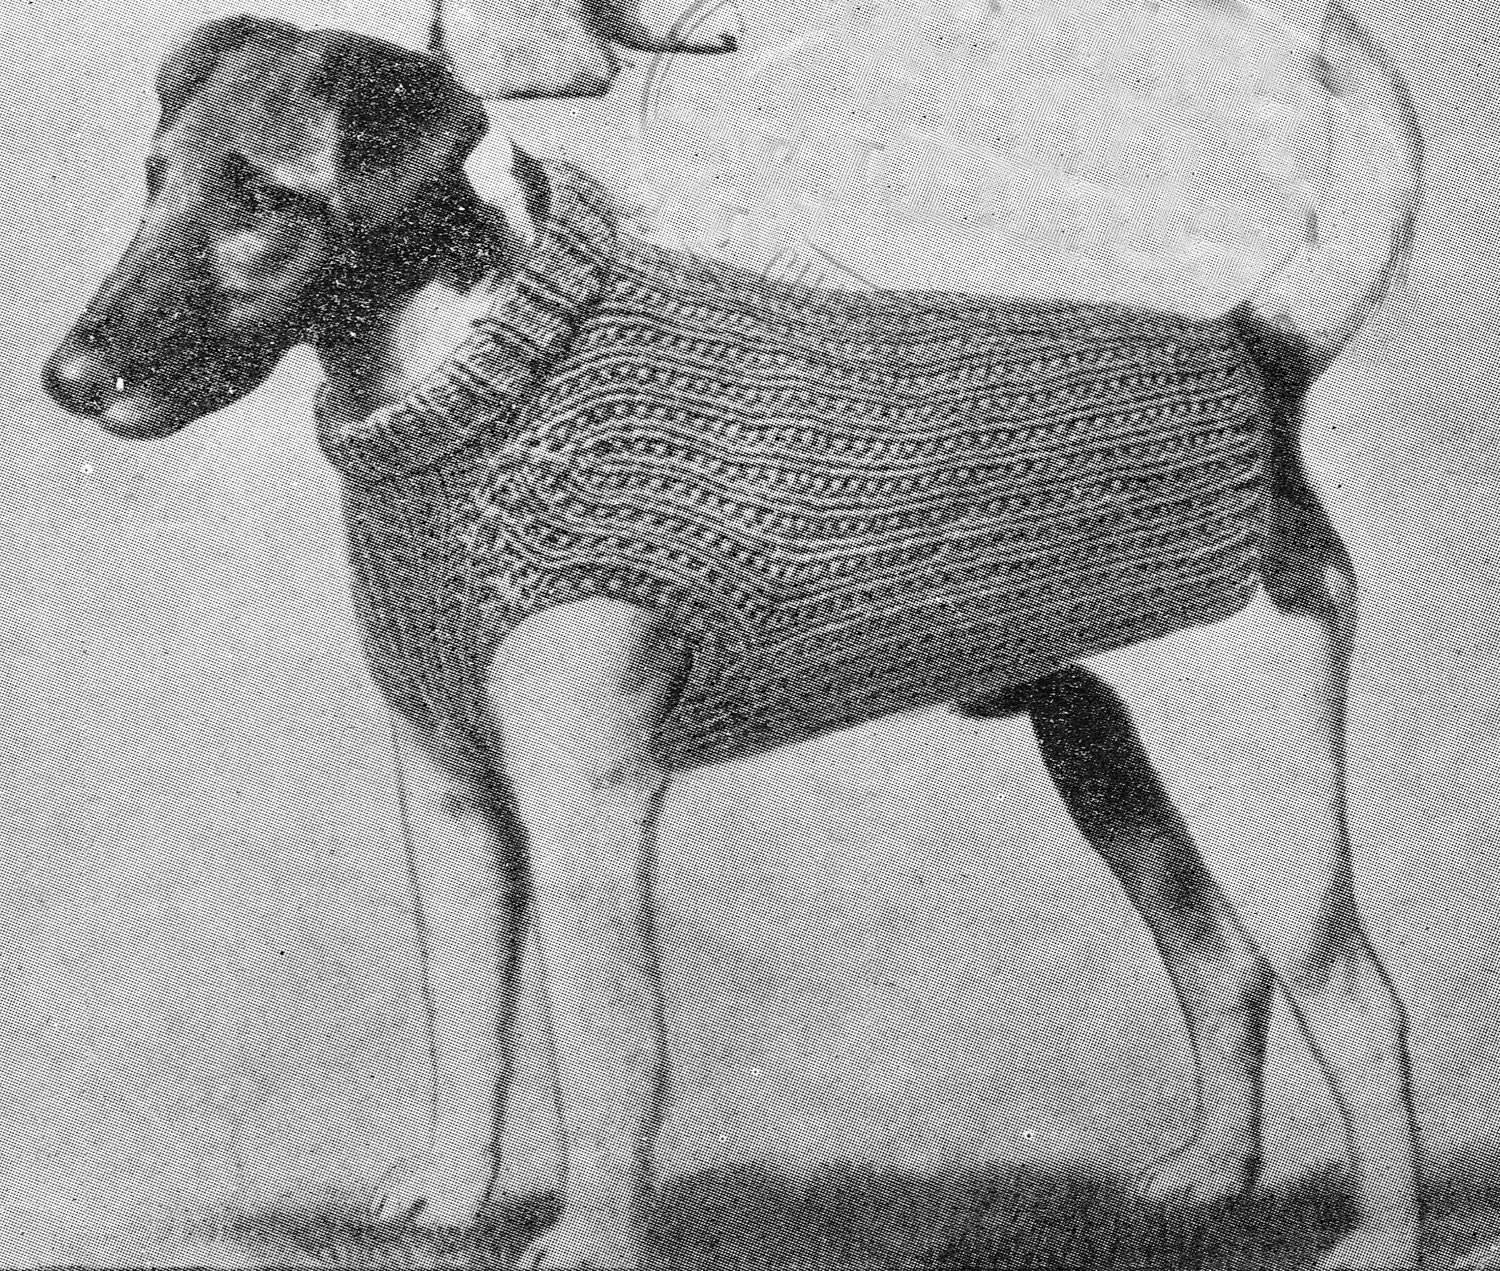 Dog Sweater Knitting Pattern Vintage 1950s Very Smart PDF